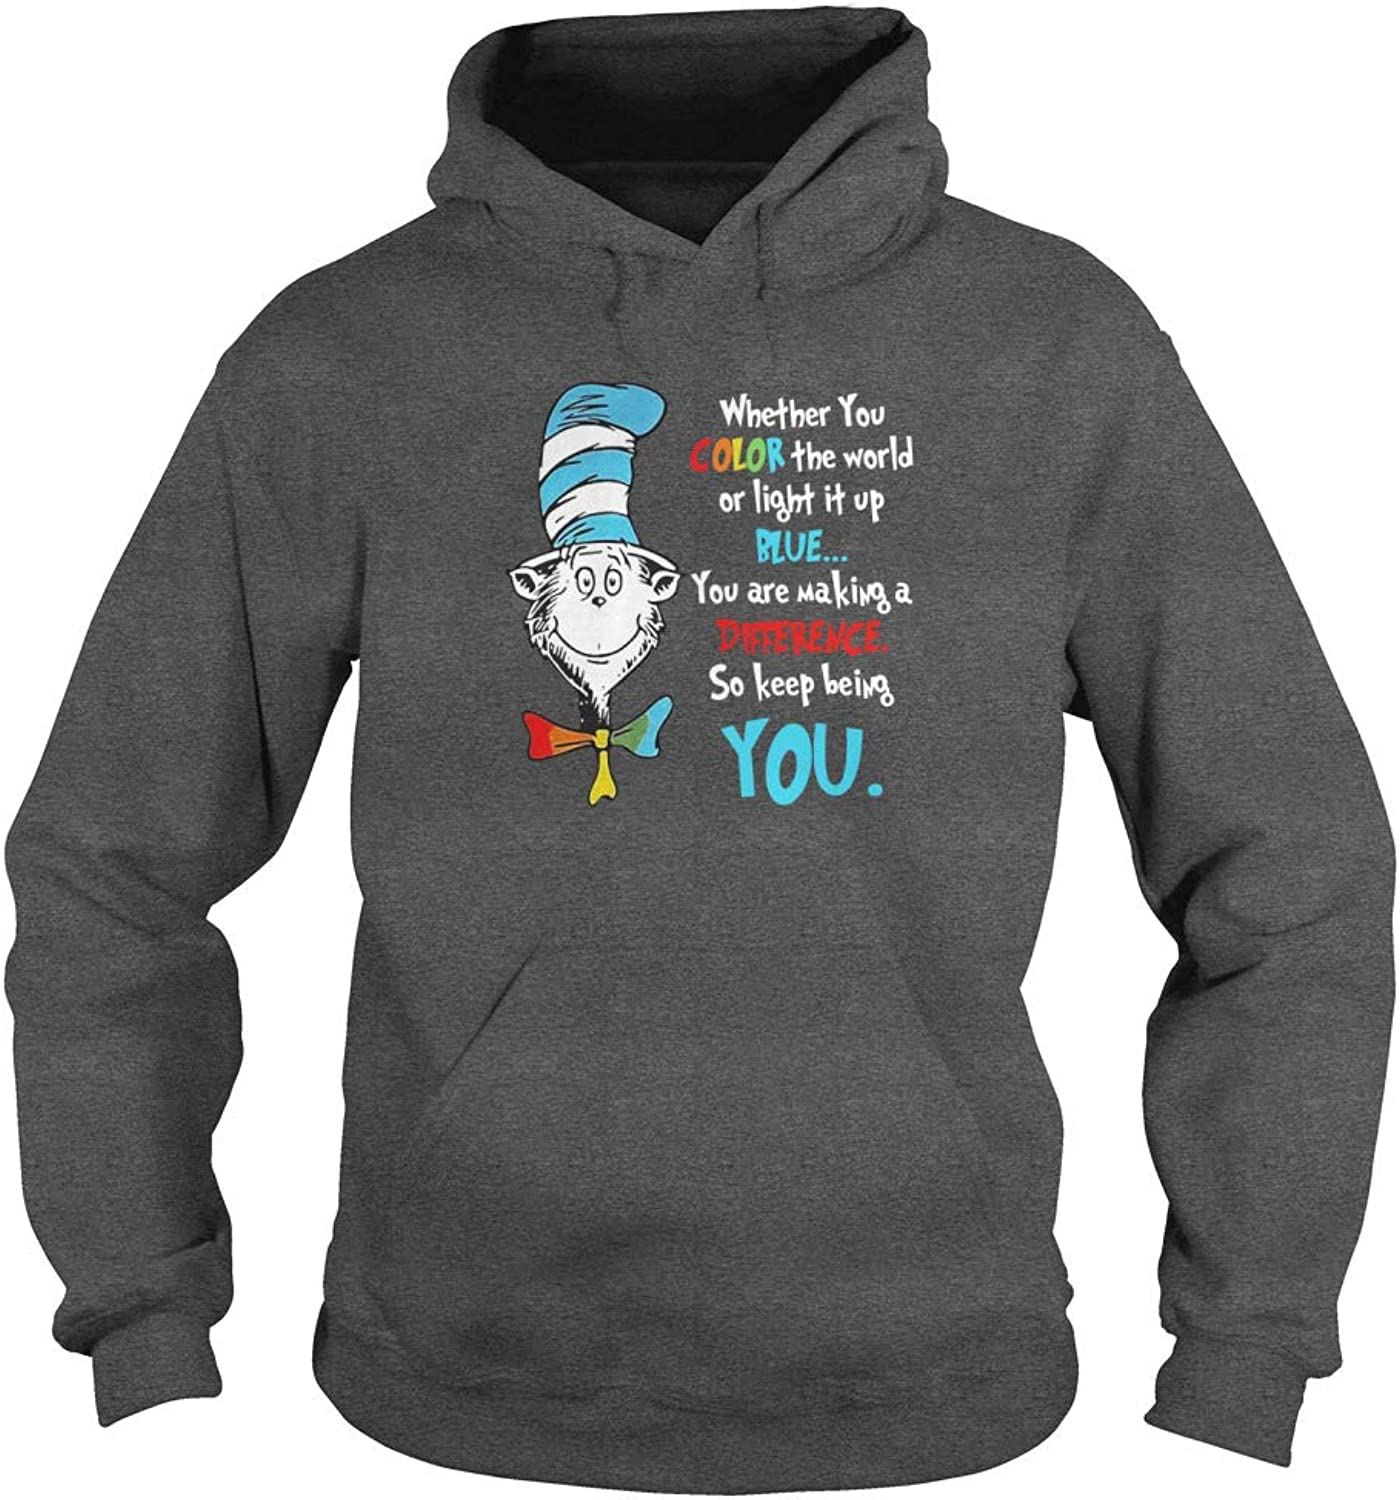 Autism Dr Seuss Whether You color The World of Light It Up blueee TShirt